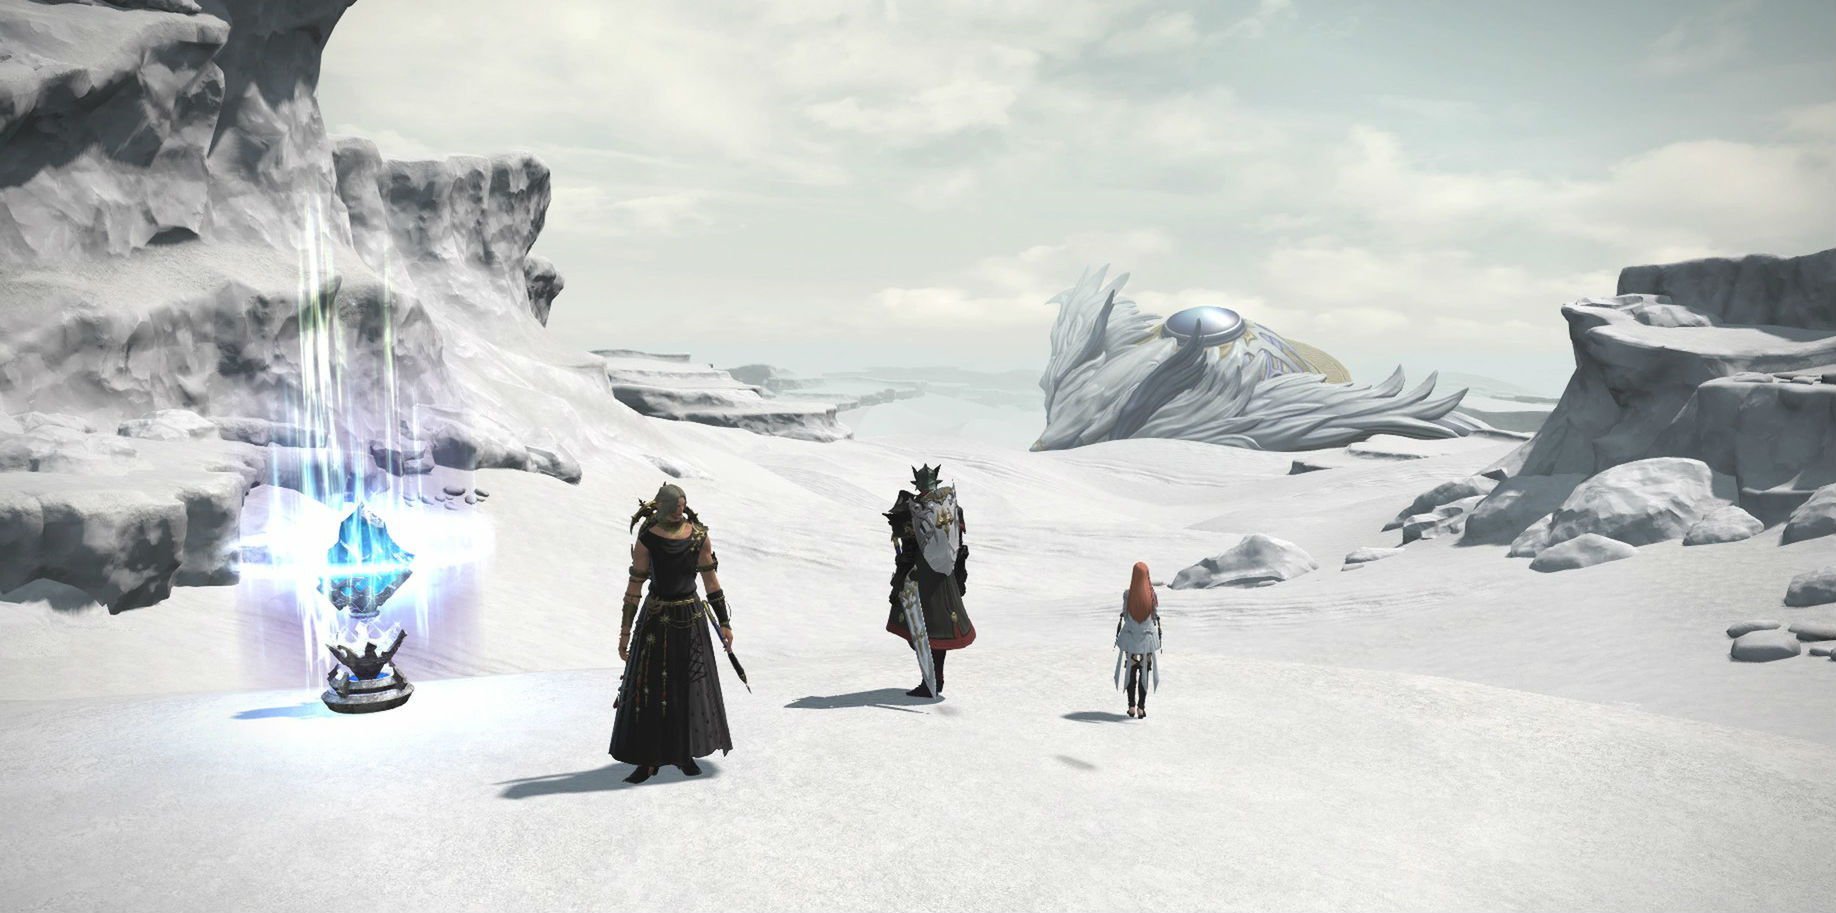 Final Fantasy XIV's new Eden raid is out today, here's how to unlock it screenshot